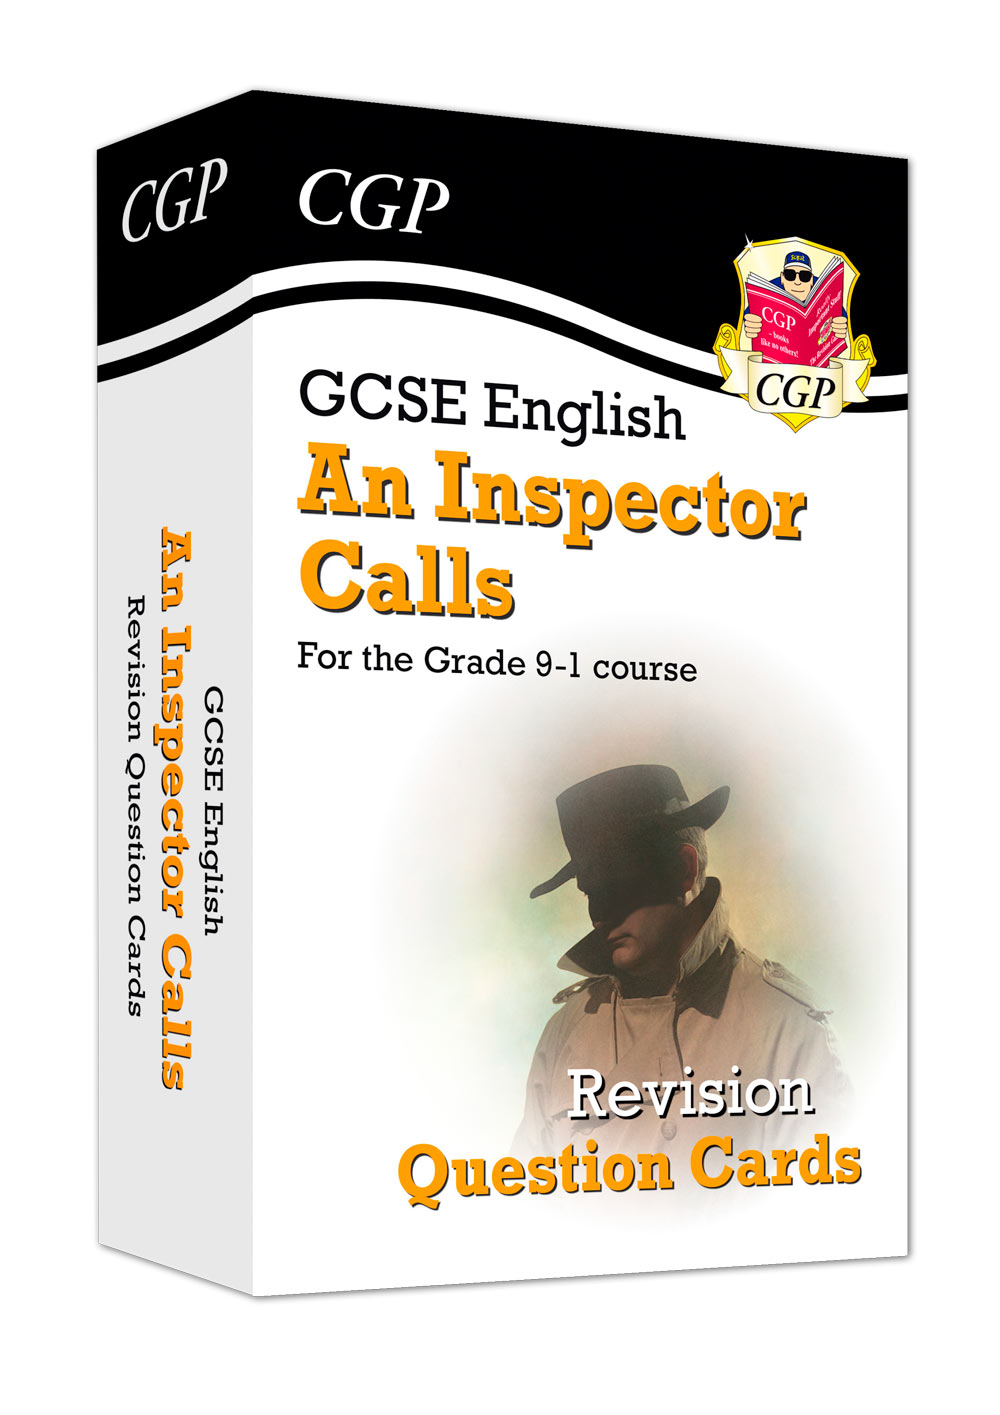 ETFI41 - New Grade 9-1 GCSE English - An Inspector Calls Revision Question Cards